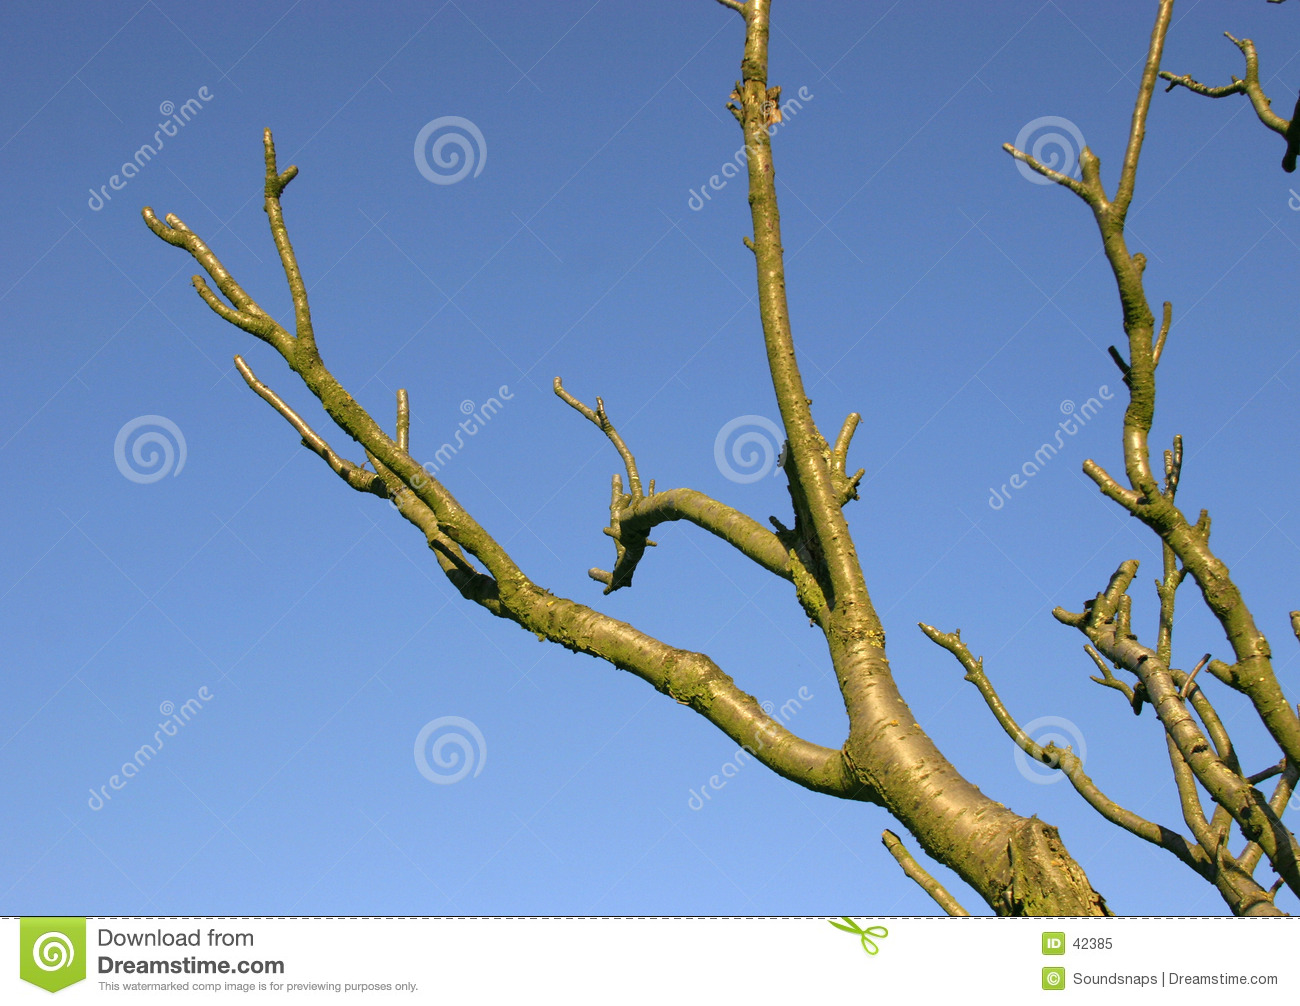 Branches against blue sky